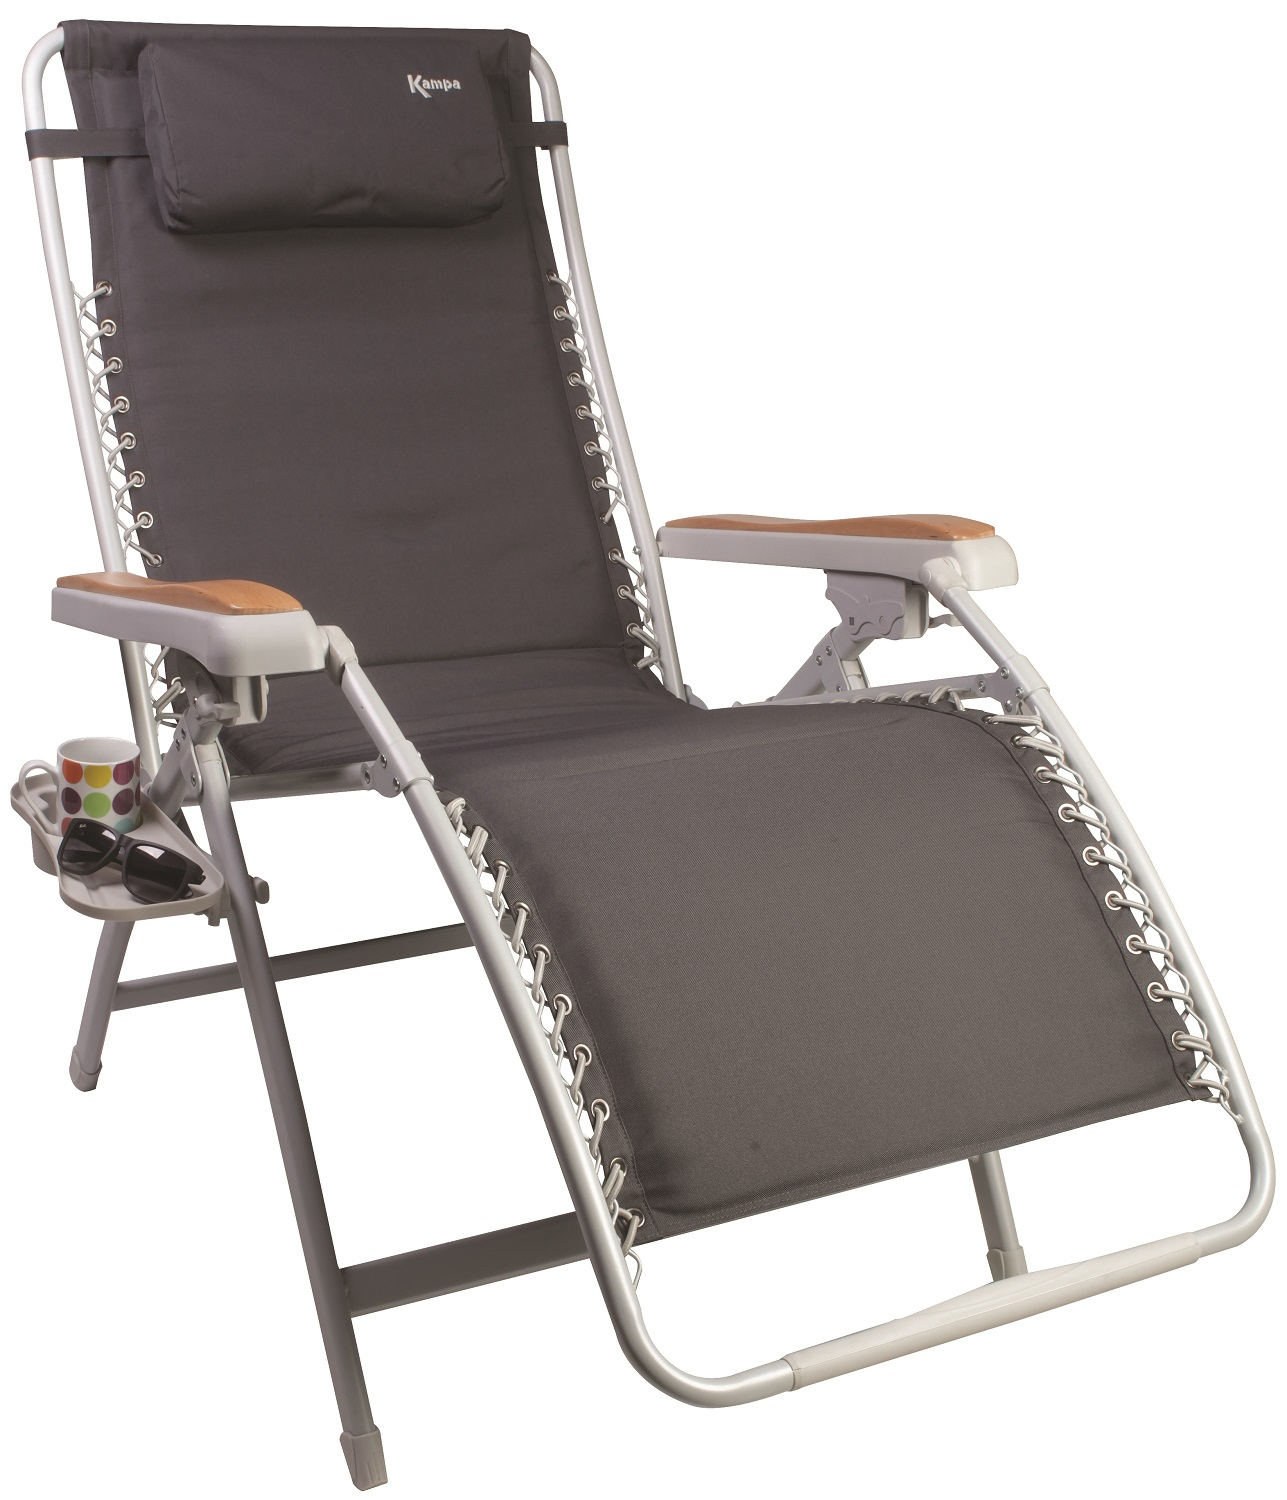 Deluxe Camping Chairs Kampa Extravagance Xl Chair Tuscany Deluxe Relaxer Camping